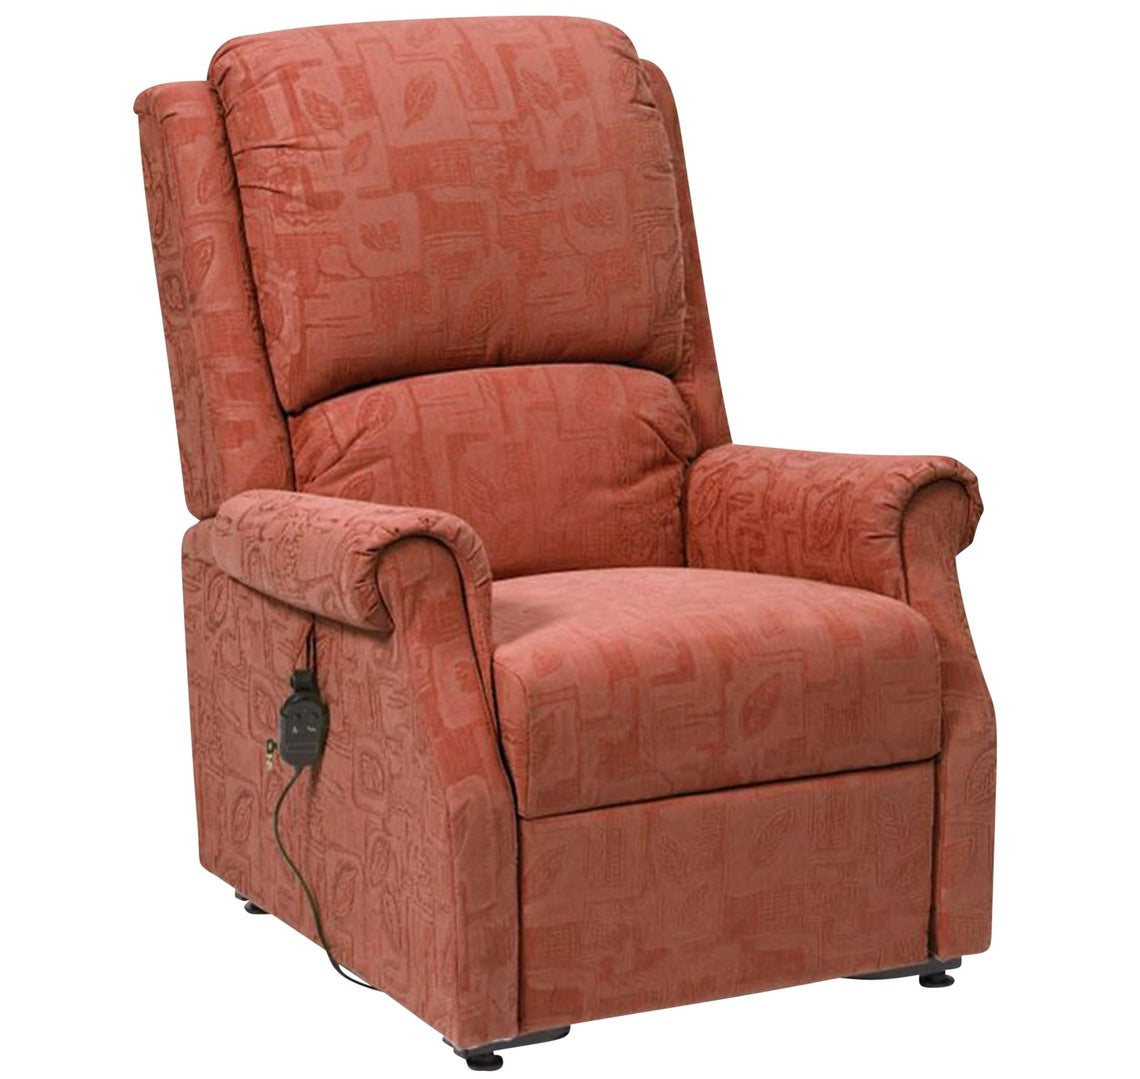 Chicago Riser Recliner Chair